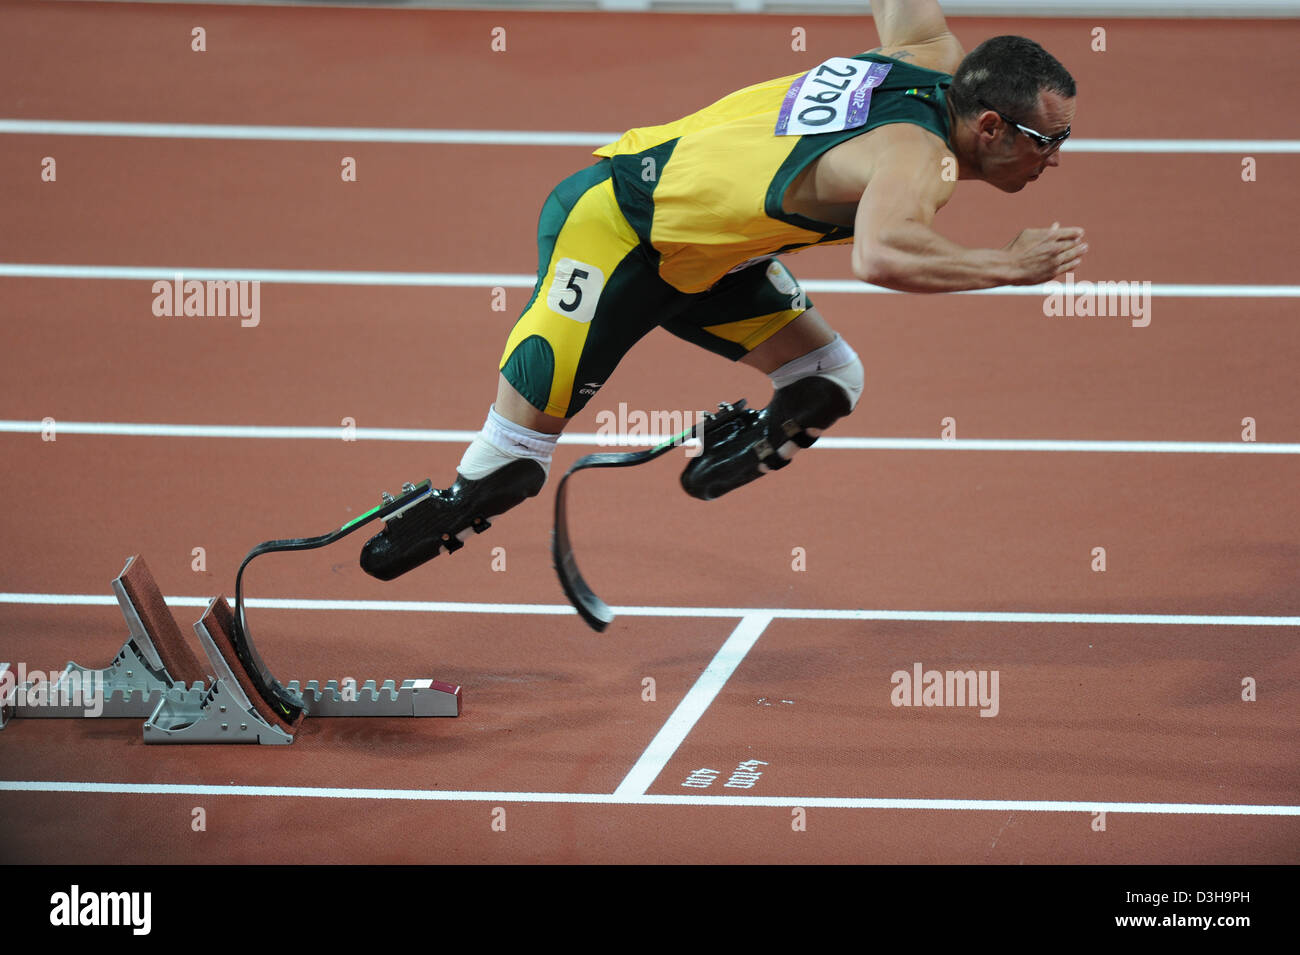 Oscar Pistorius competes in the 400m at the London Olympic Games 2012 - Stock Image